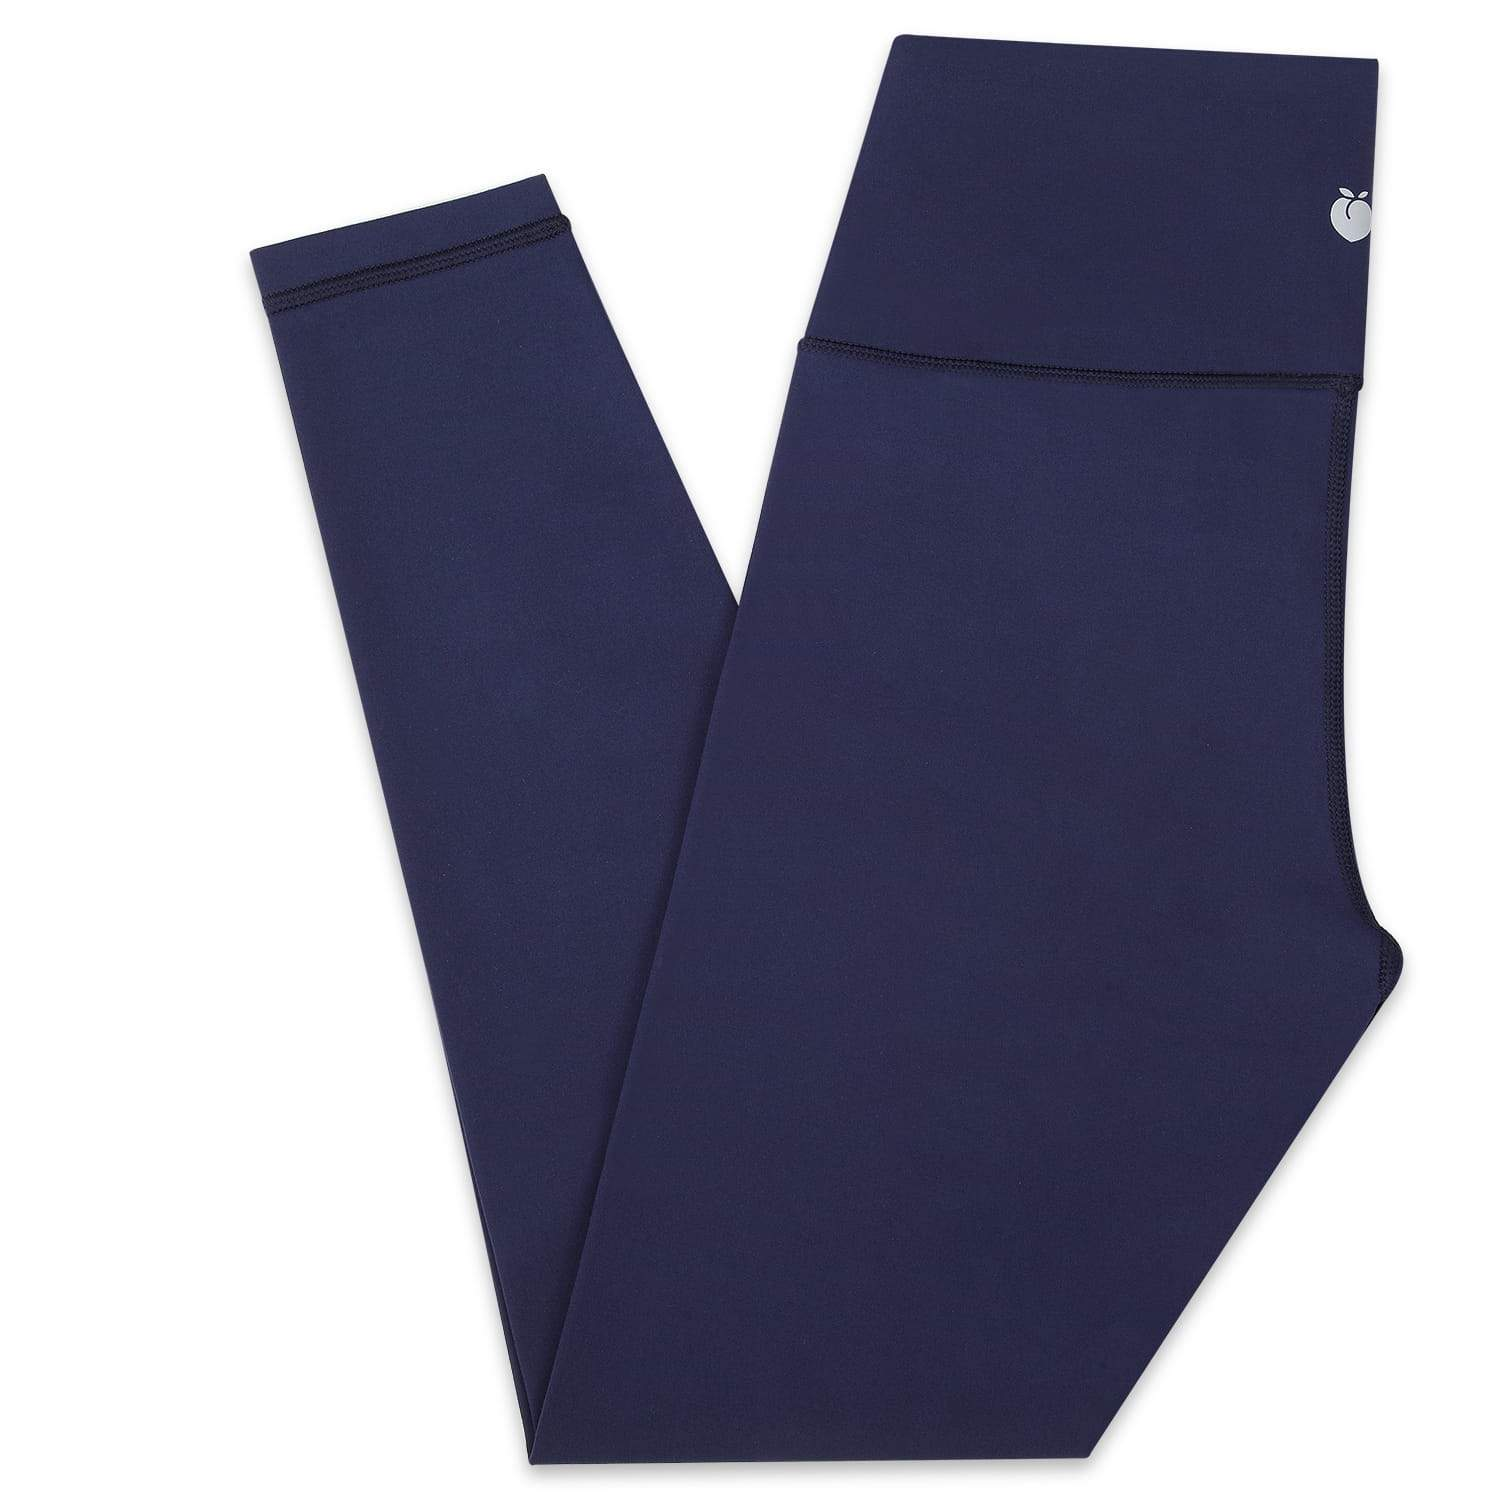 Bare High & Mighty Full Length Pant - Navy Blue